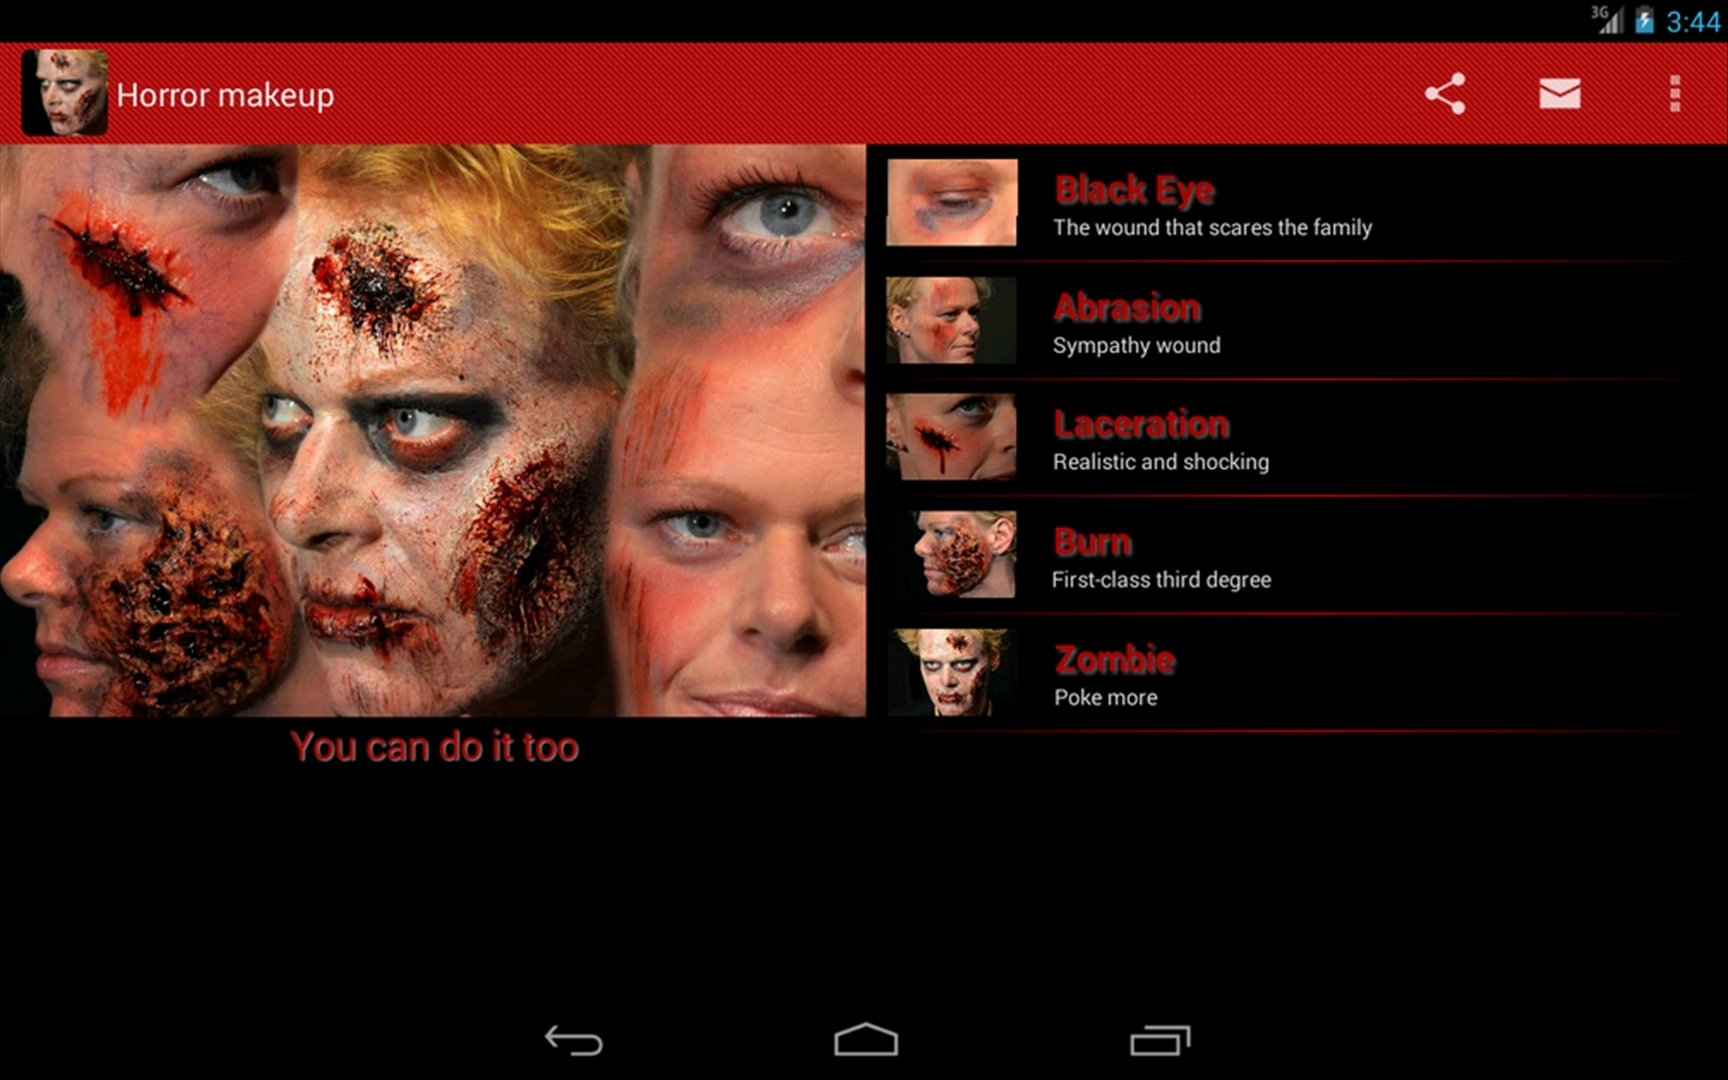 Halloween Horror Makeup Android image 4